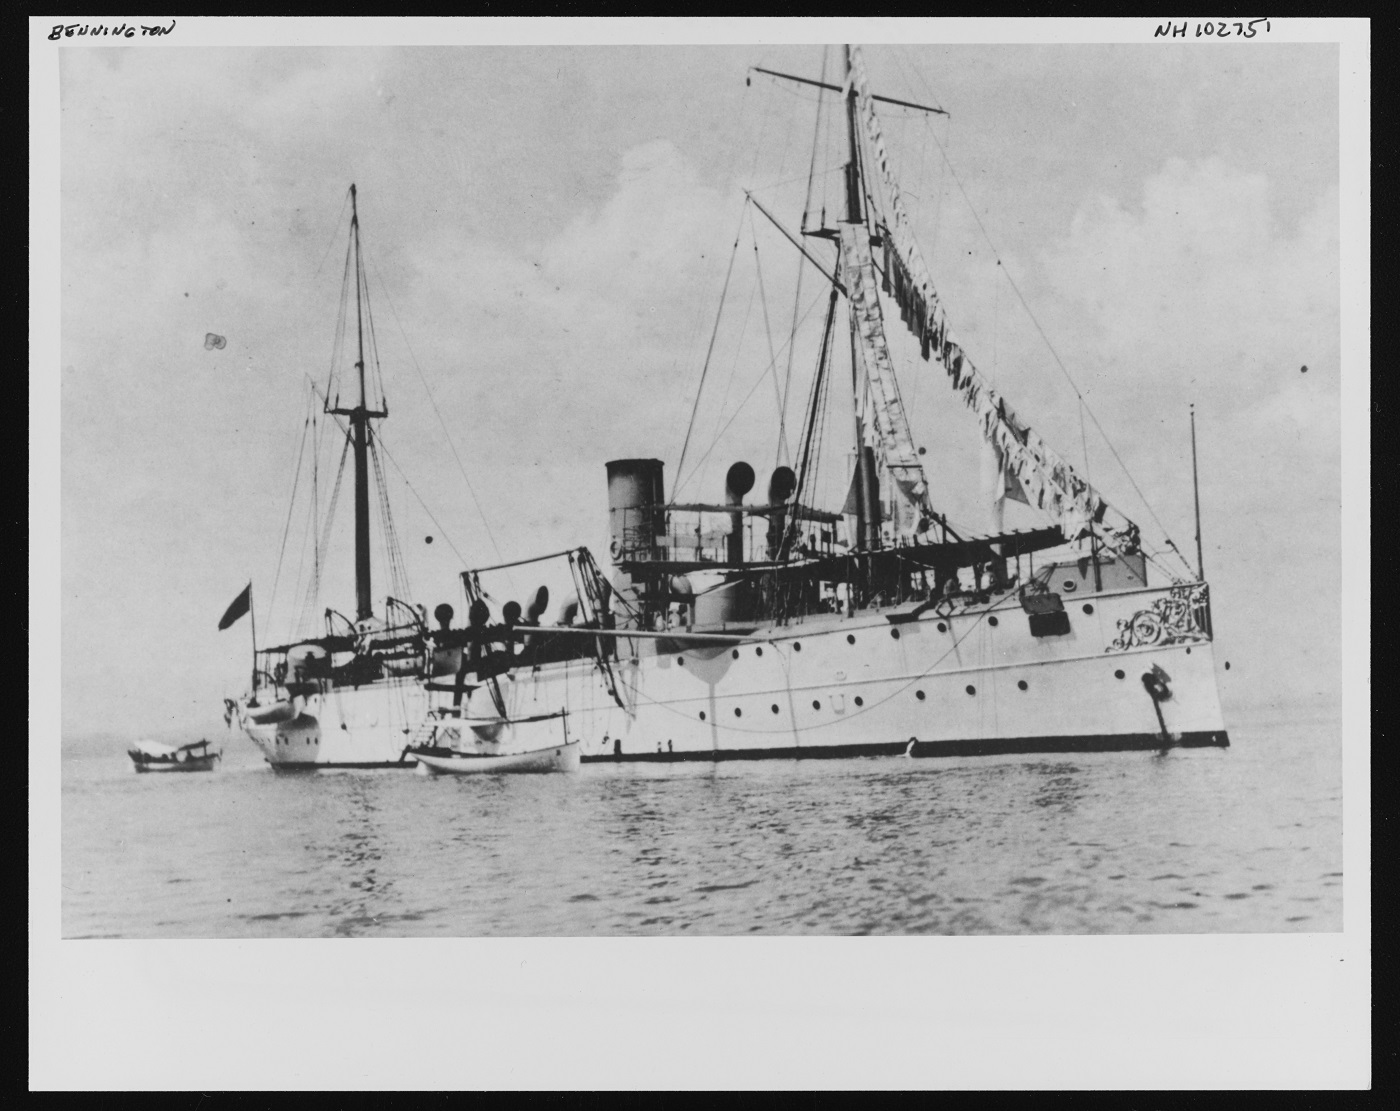 (Gunboat # 4) At anchor while serving with the Pacific Squadron in 1904. Donation of John C. Reilly, Jr., 1977. U.S. Naval History and Heritage Command Photograph. Catalog #: NH 102751